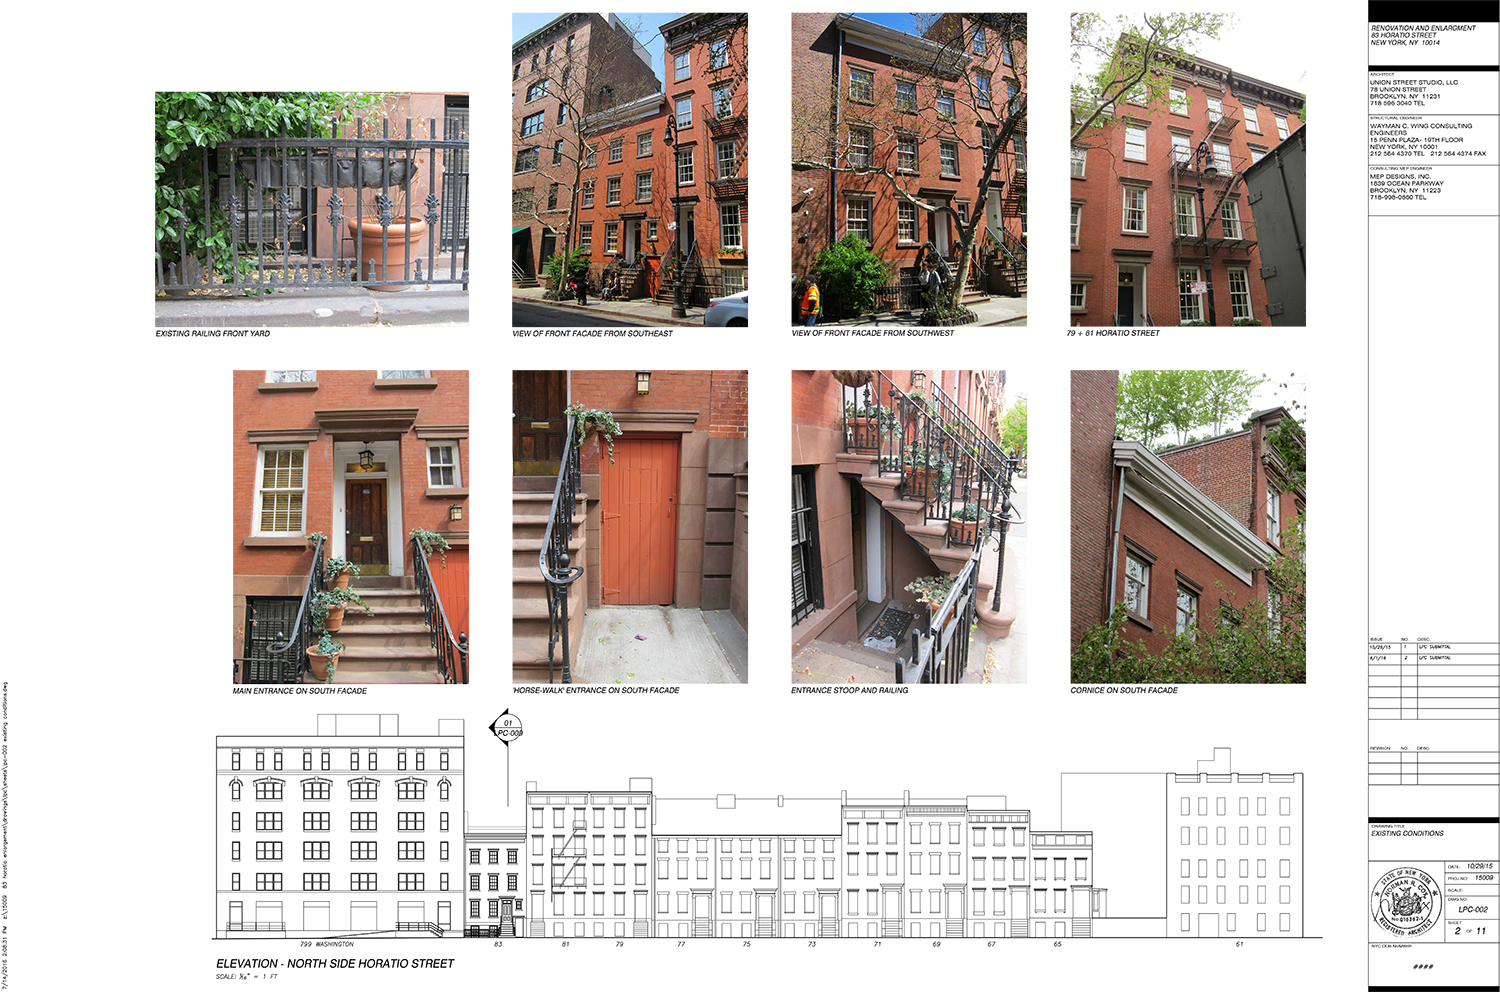 home design fails architects quinta monroy housing iquique proposed expansion of home at 83 horatio street west village lpc 011 existing front facade windows